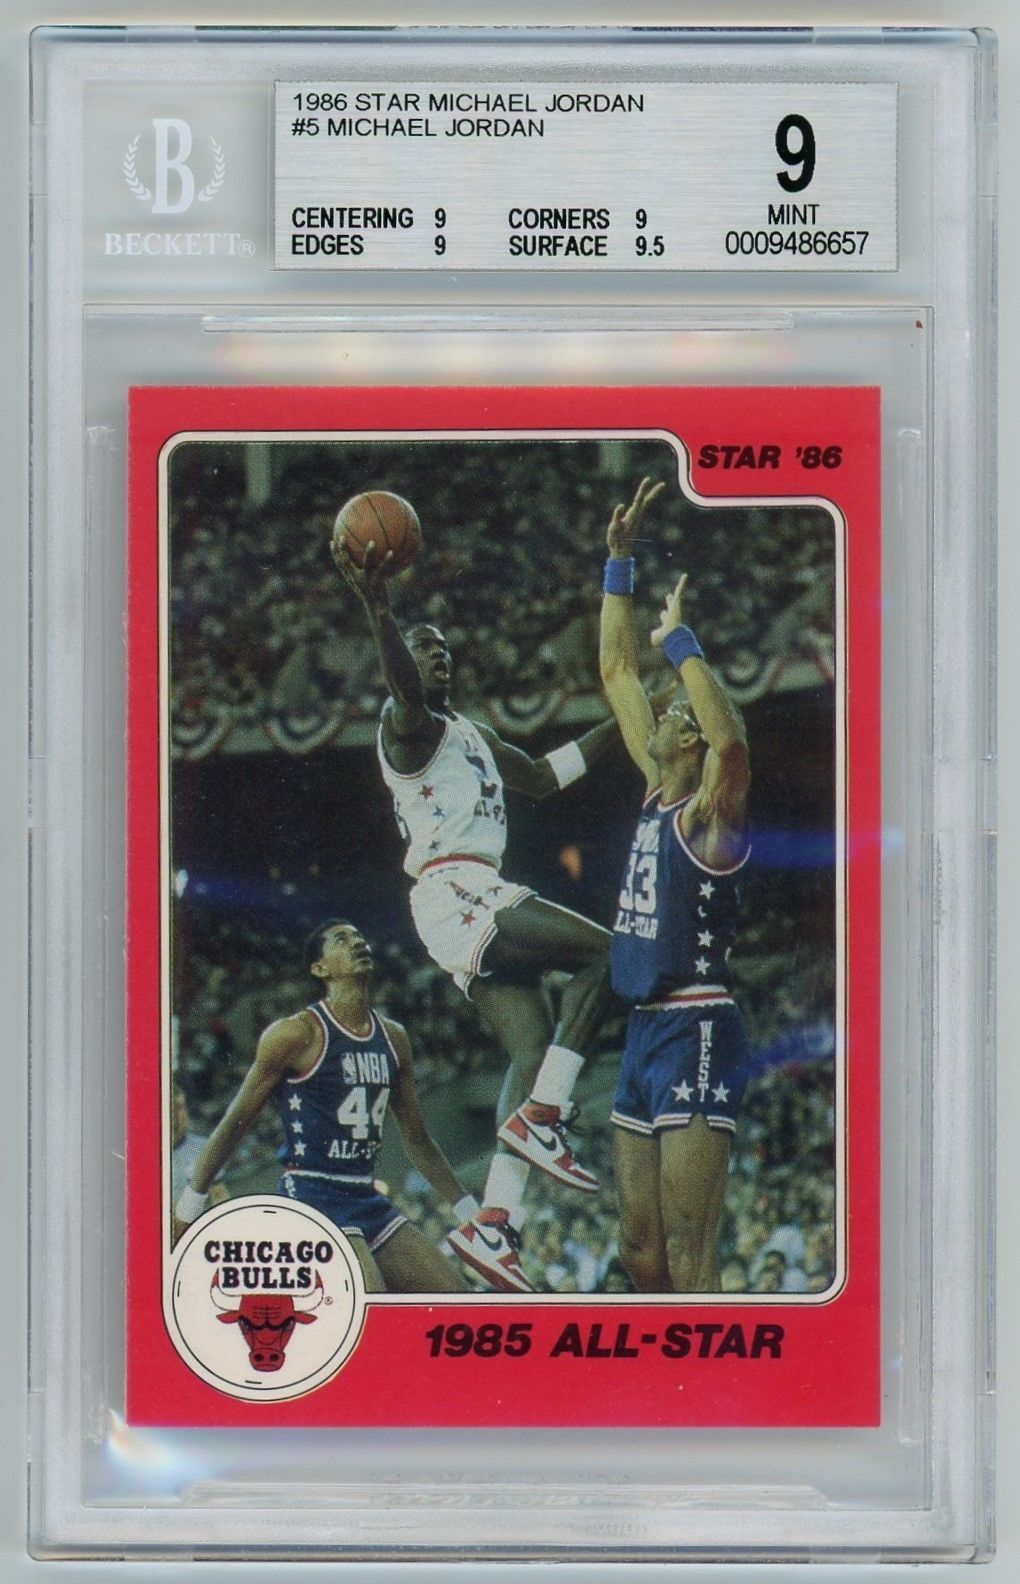 c31c2694e2a2  SportsCards Michael Jordan 1986 Star Basketball Card  5 1985 All-Star BGS  9 Mint  Collectible  Gifts